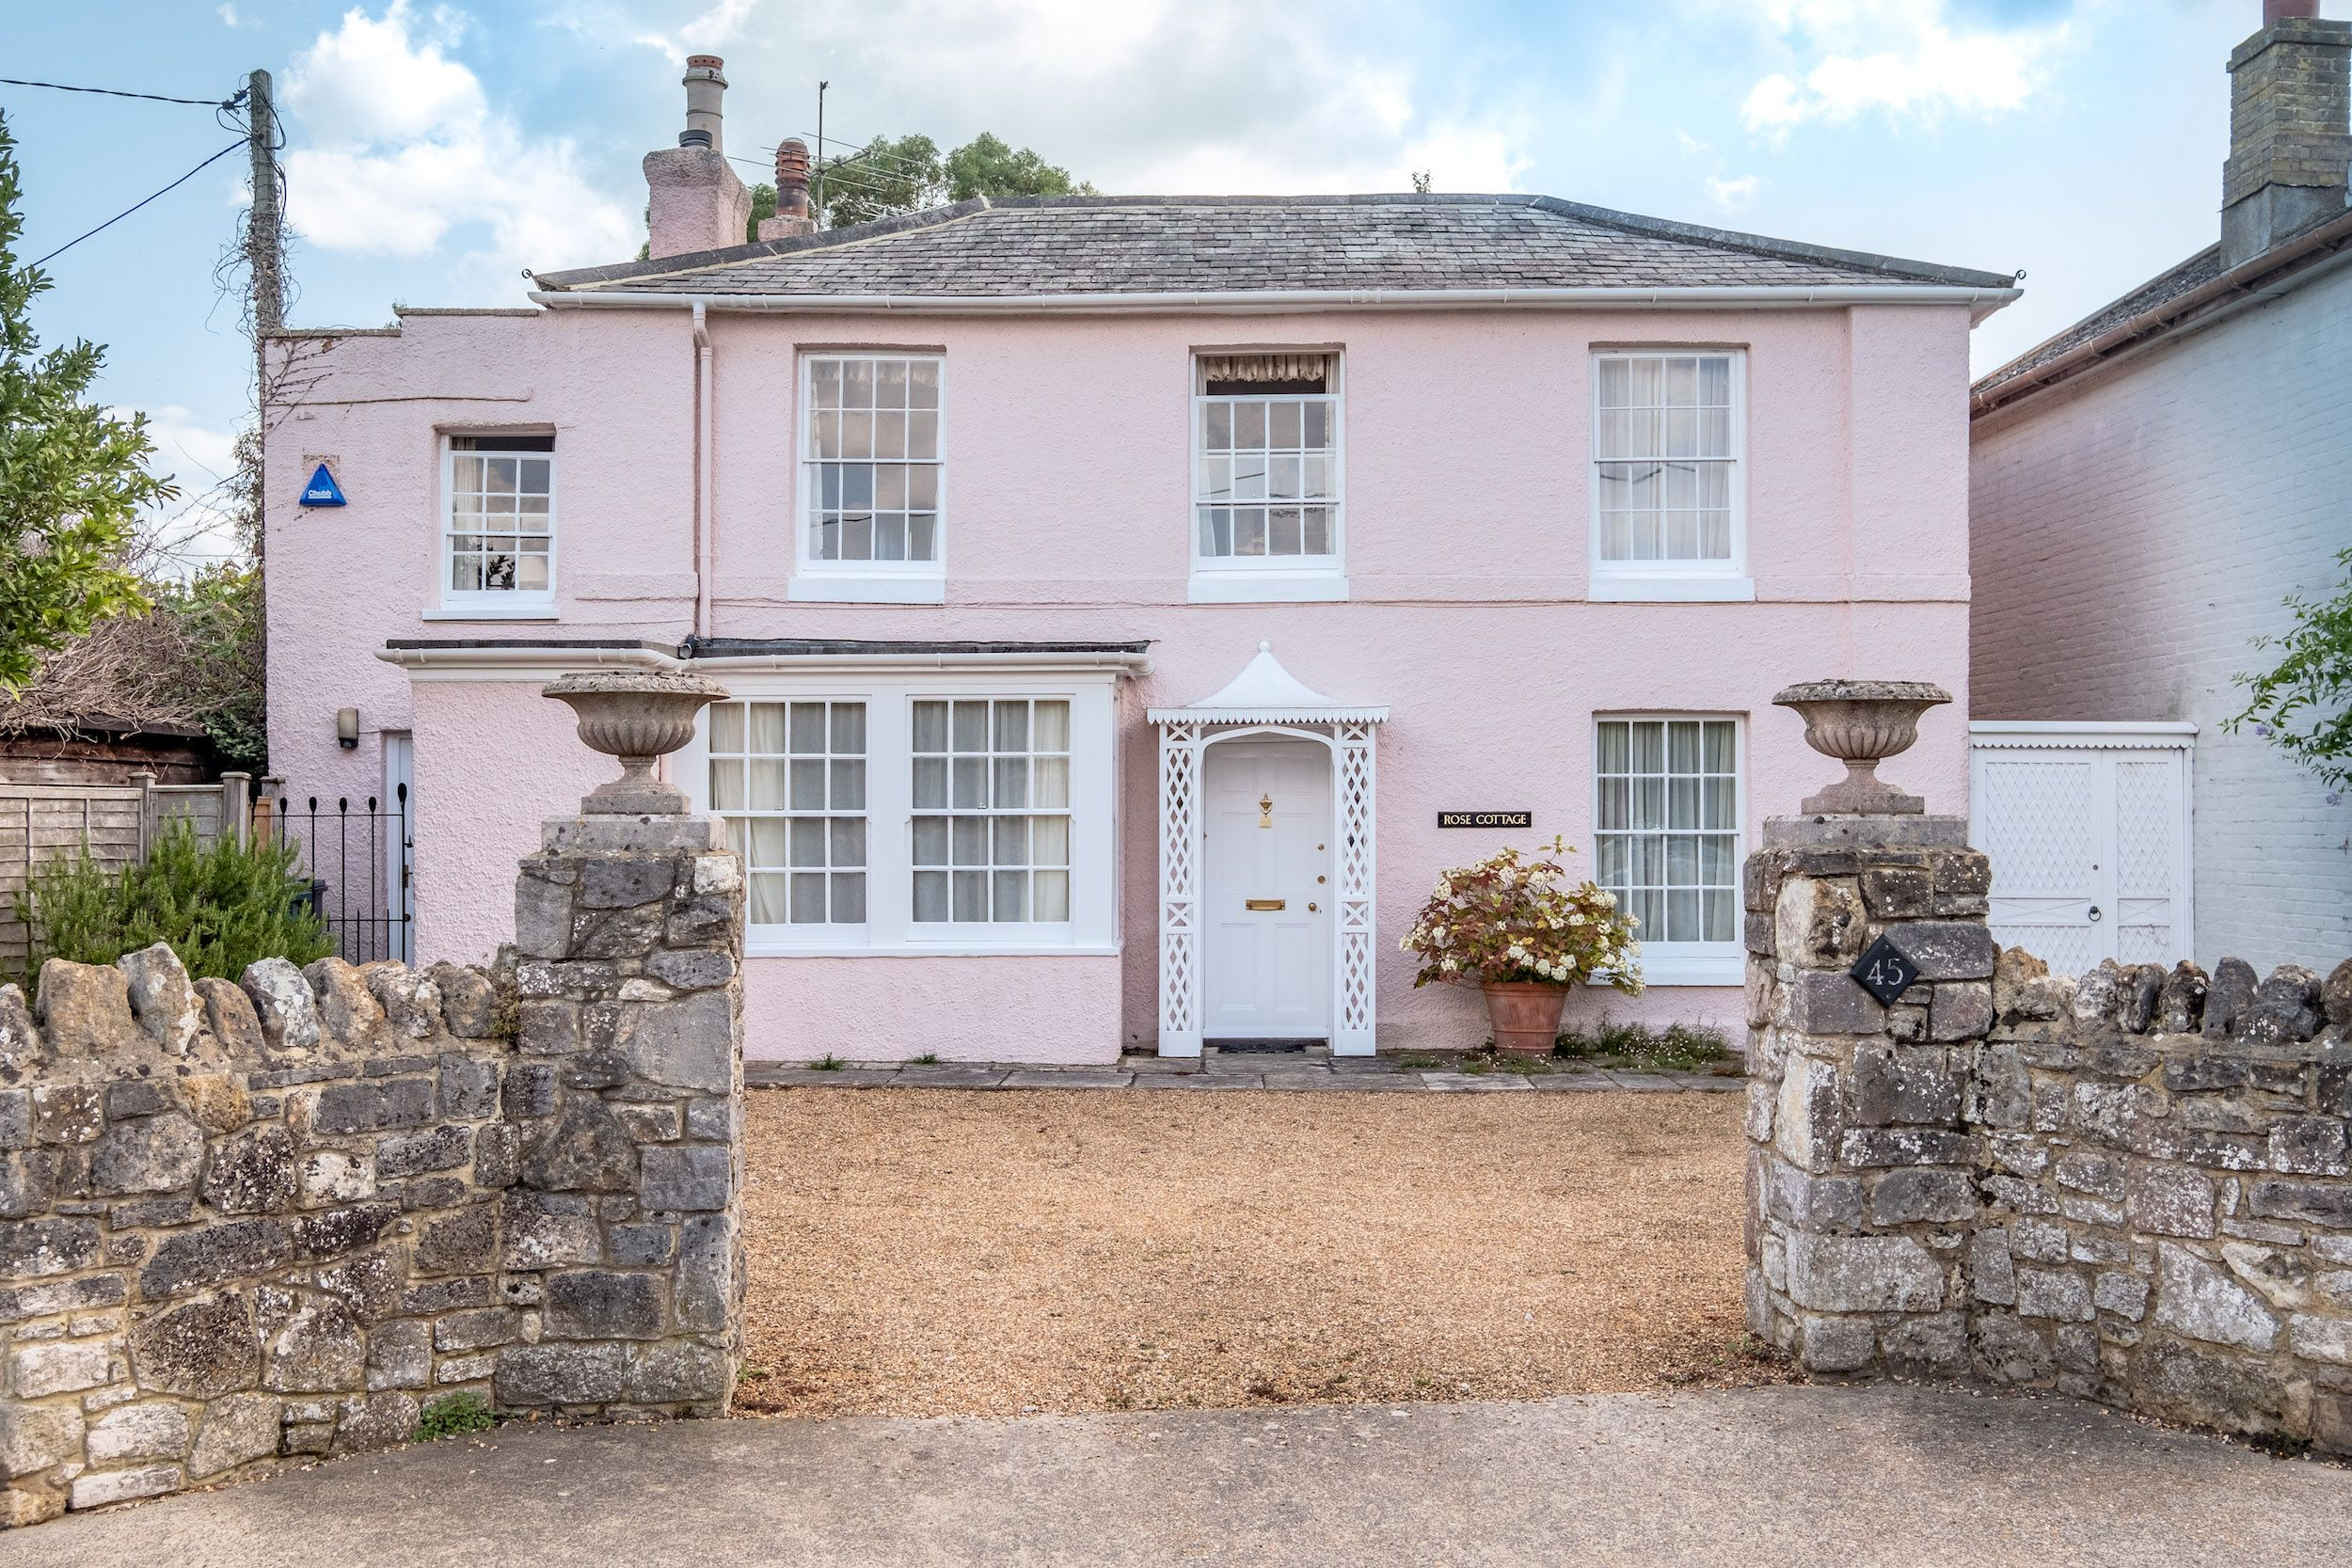 Childhood home of Pink Panther actor David Niven for sale on the Isle of Wight